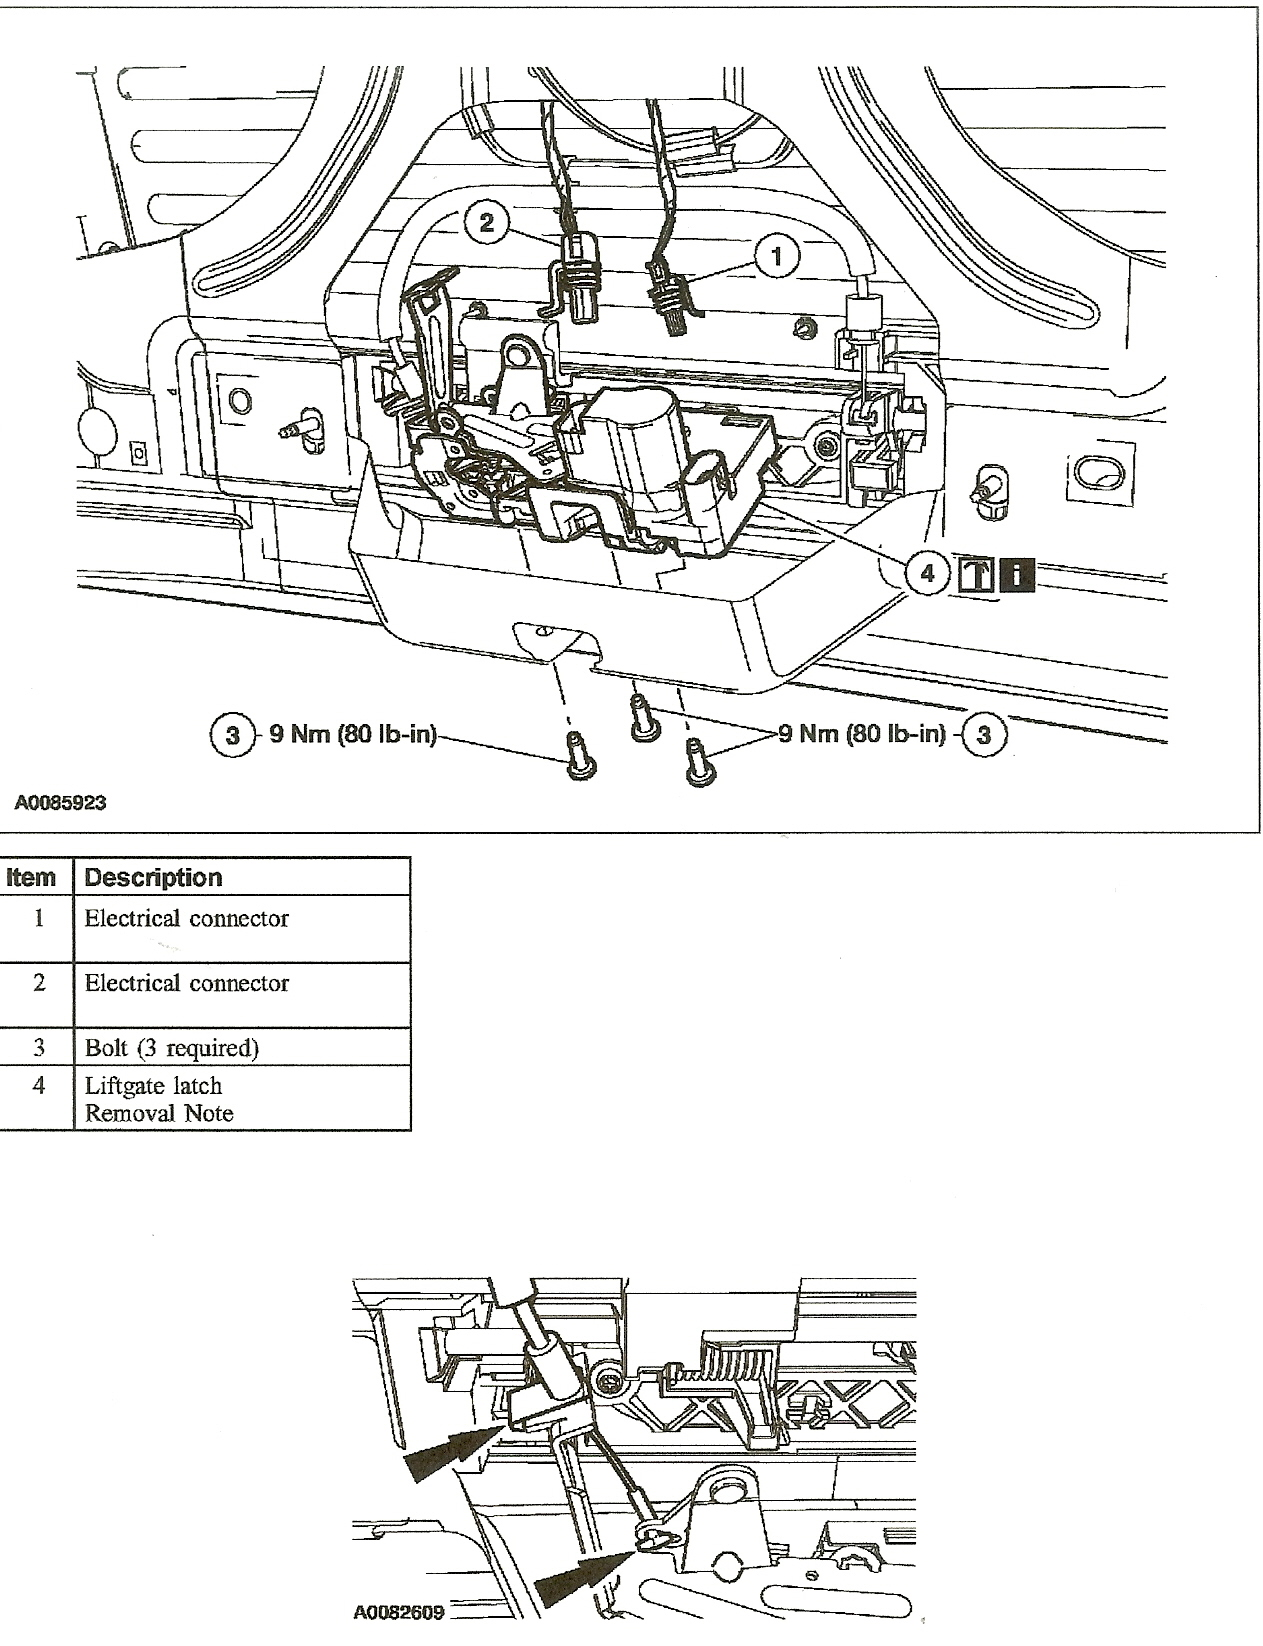 2002 Explorer Rear Window Latch Diagram in addition 2007 Chevrolet Silverado Rear Wheel Speed Sensor Circuit Erratic Signal furthermore Dodge 5 9 Engine Vacuum Diagram furthermore Where Is The Fuel Pressure Regulator Vacuum Hose Located On A 96 Chevy C150    108133 in addition 582eb 2006 Chevy Blower Motor Cargo Van 2500 It Fuse Block. on gmc savana 1500 transmission diagram